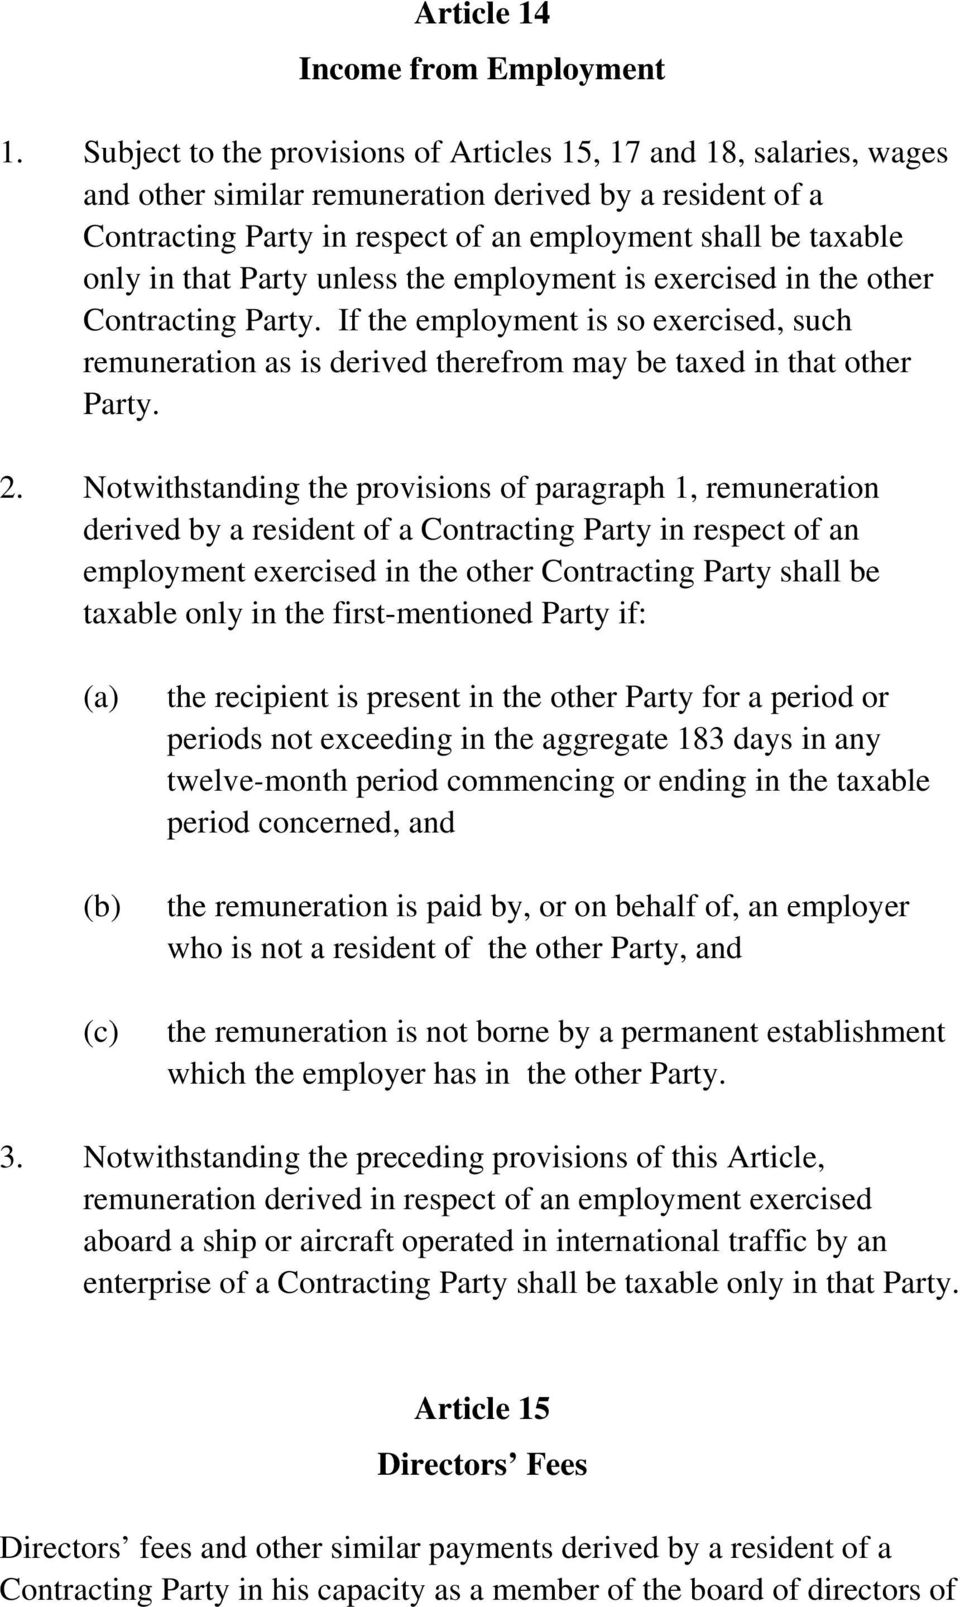 that Party unless the employment is exercised in the other Contracting Party. If the employment is so exercised, such remuneration as is derived therefrom may be taxed in that other Party. 2.